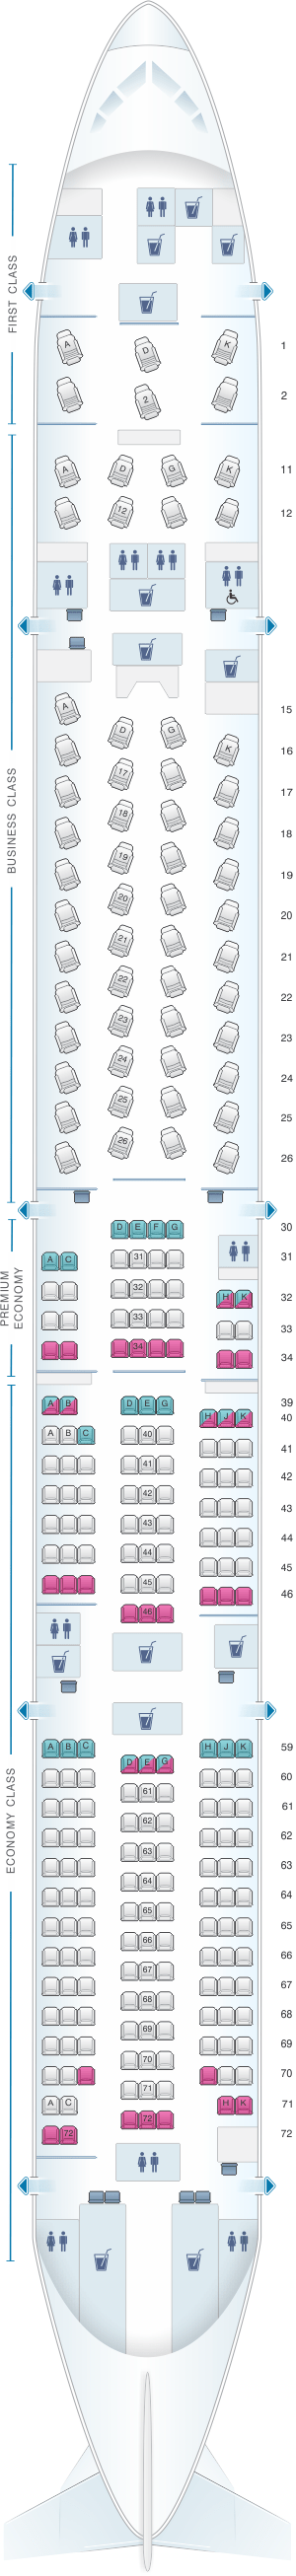 Seat Map For Cathay Pacific Airways Boeing B777 300 77h